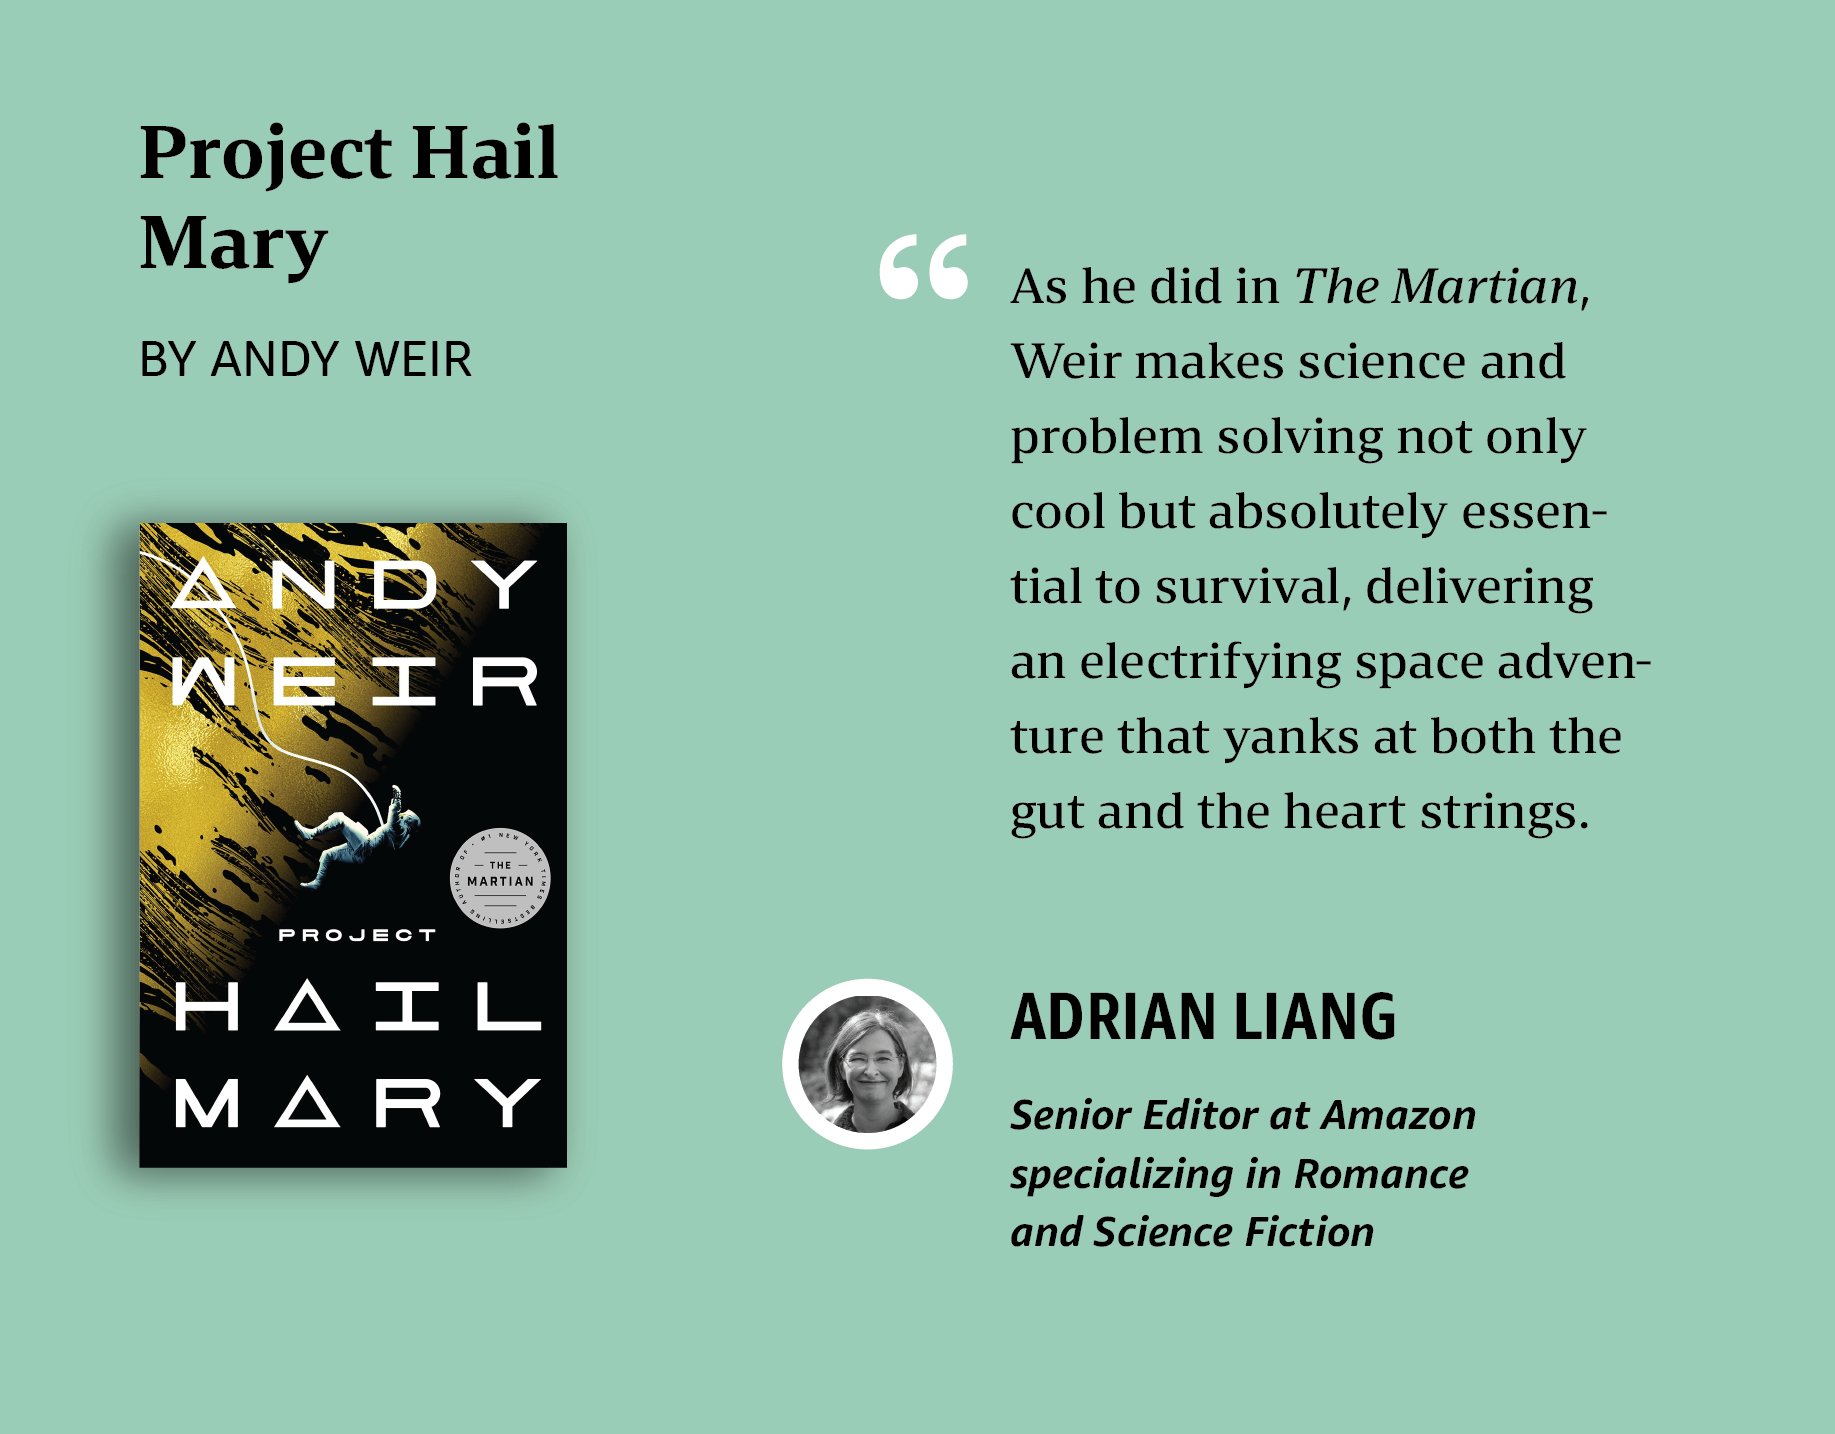 Adrian's personal pick: Project Hail Mary